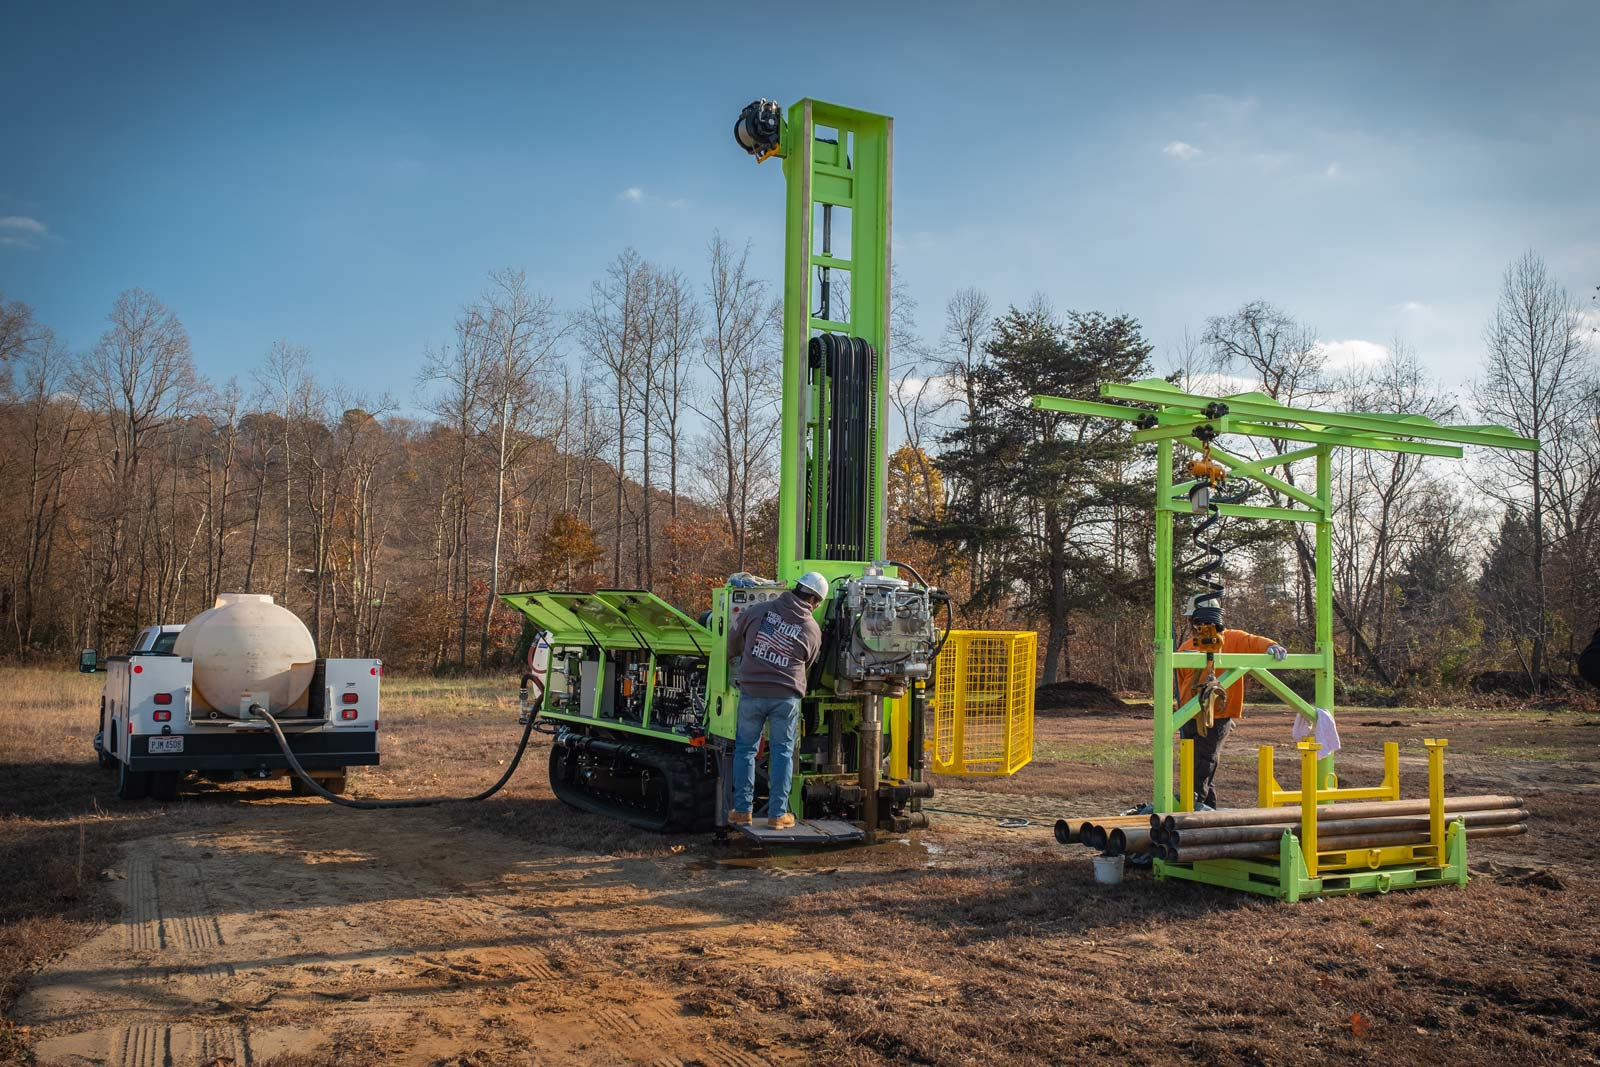 150cc sonic drill rig and tug system for easy pipe handling